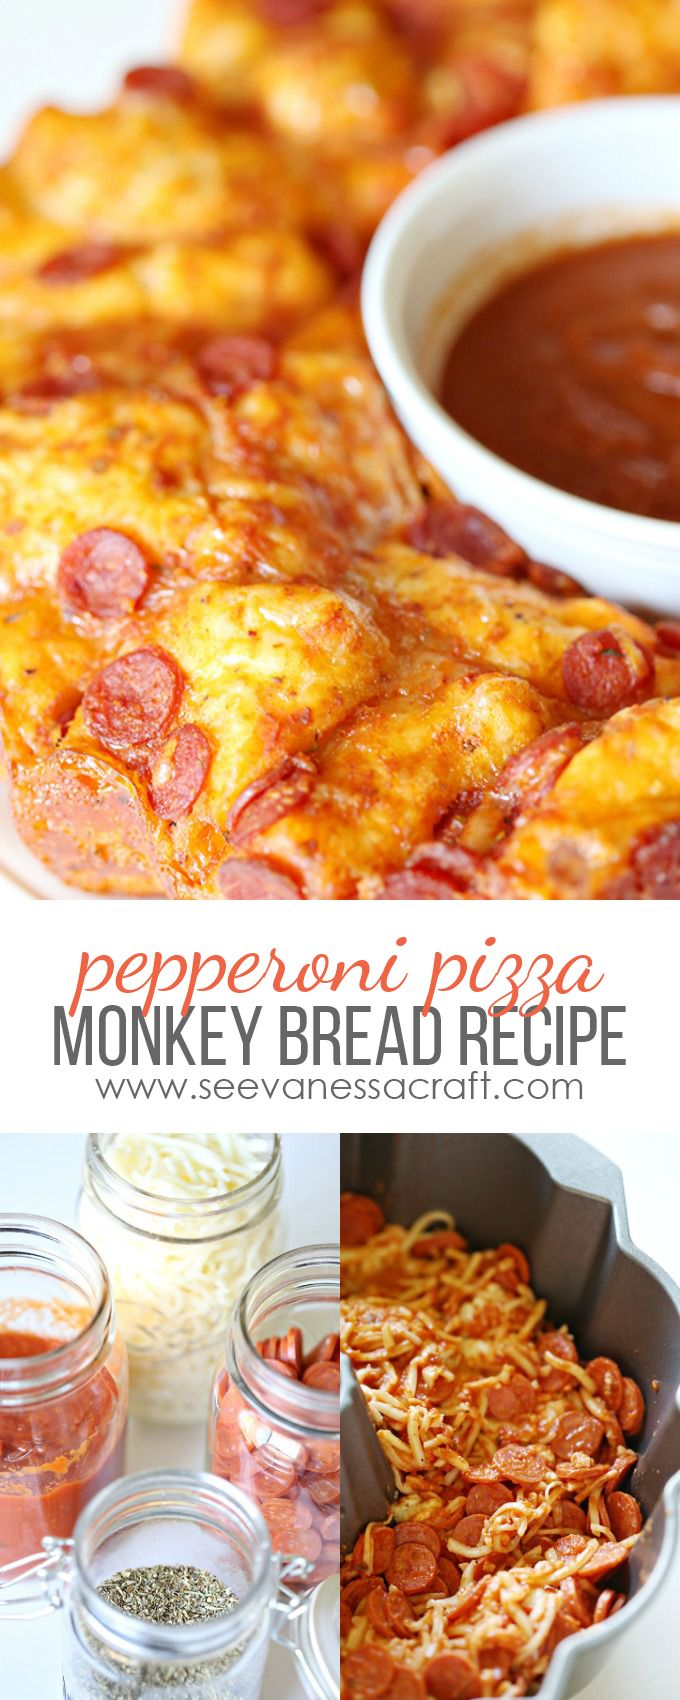 Pepperoni Pizza Monkey Bread Recipe